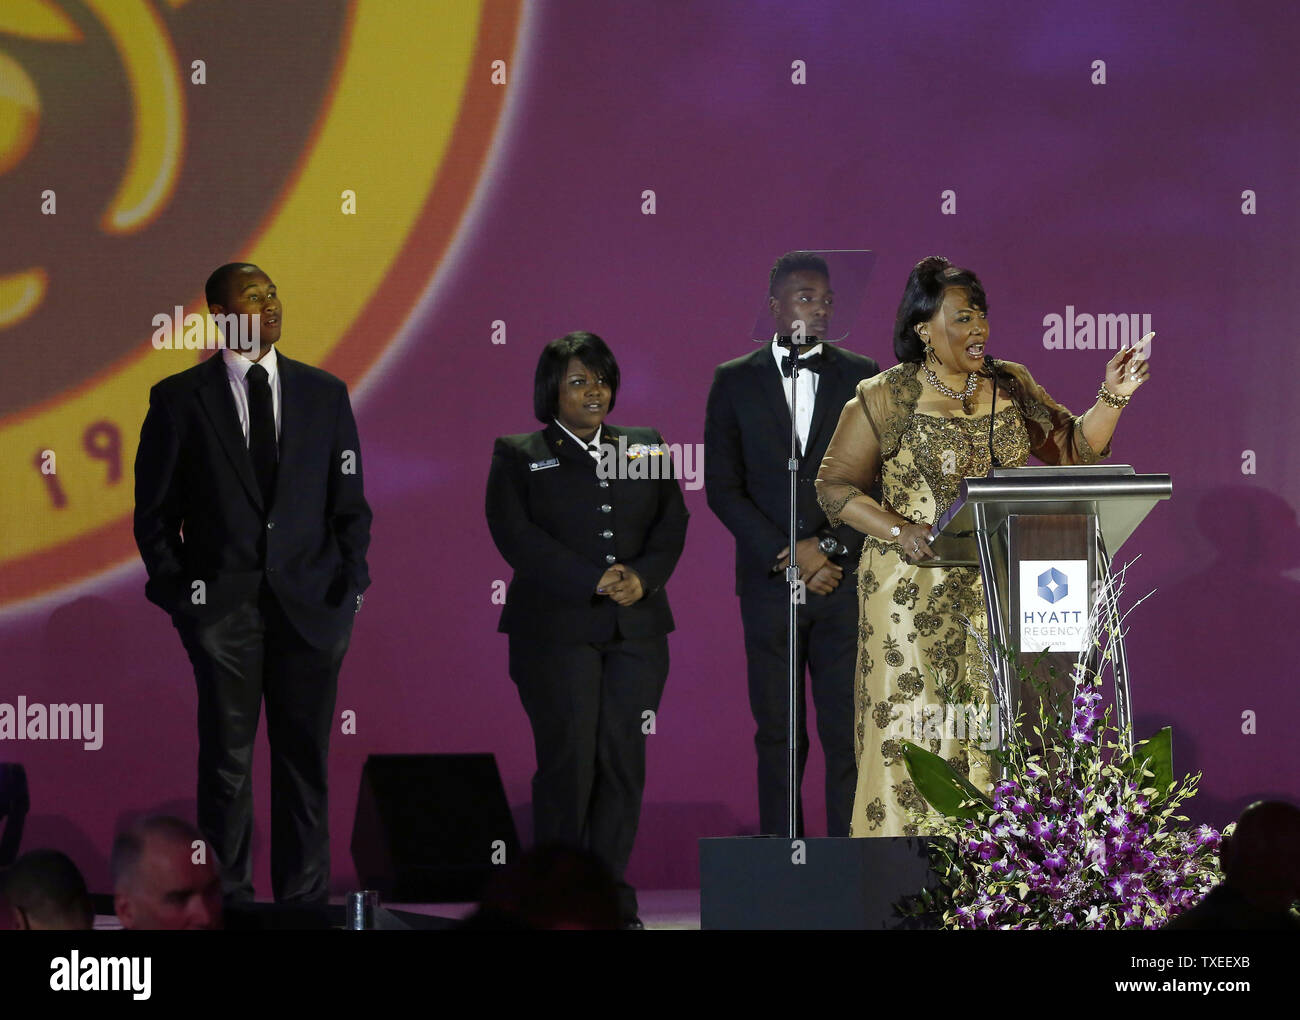 The Rev. Bernice King (R) introduces students participating in the Nonviolence 365 program during the 86th birthday celebration for Martin Luther King Jr. during the annual Salute to Greatness Awards Dinner on January 17, 2015, in Atlanta. Photo by David Tulis/UPI - Stock Image